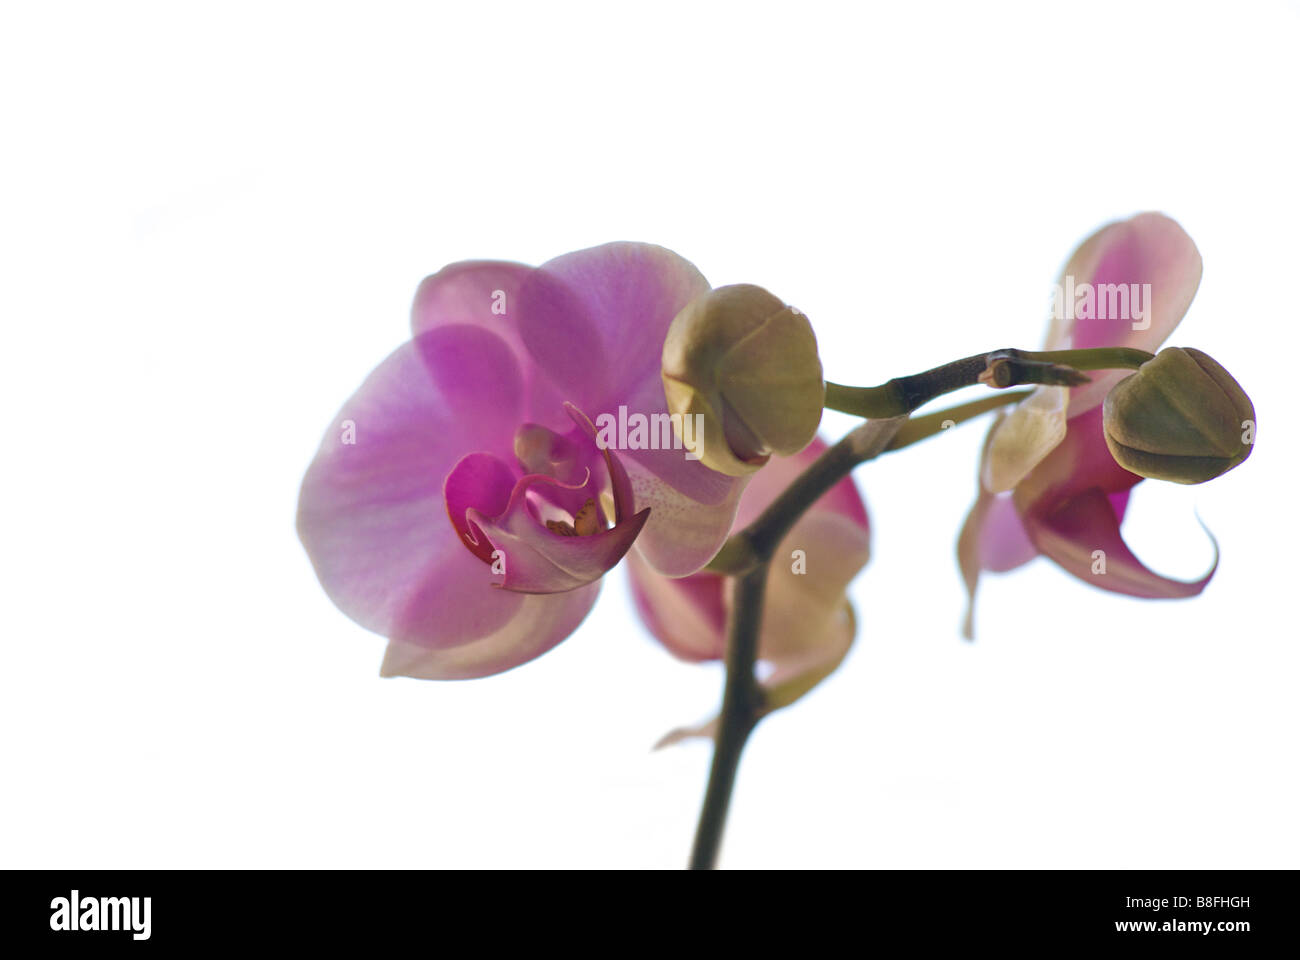 Thai orchid against a white background. Thailand - Stock Image